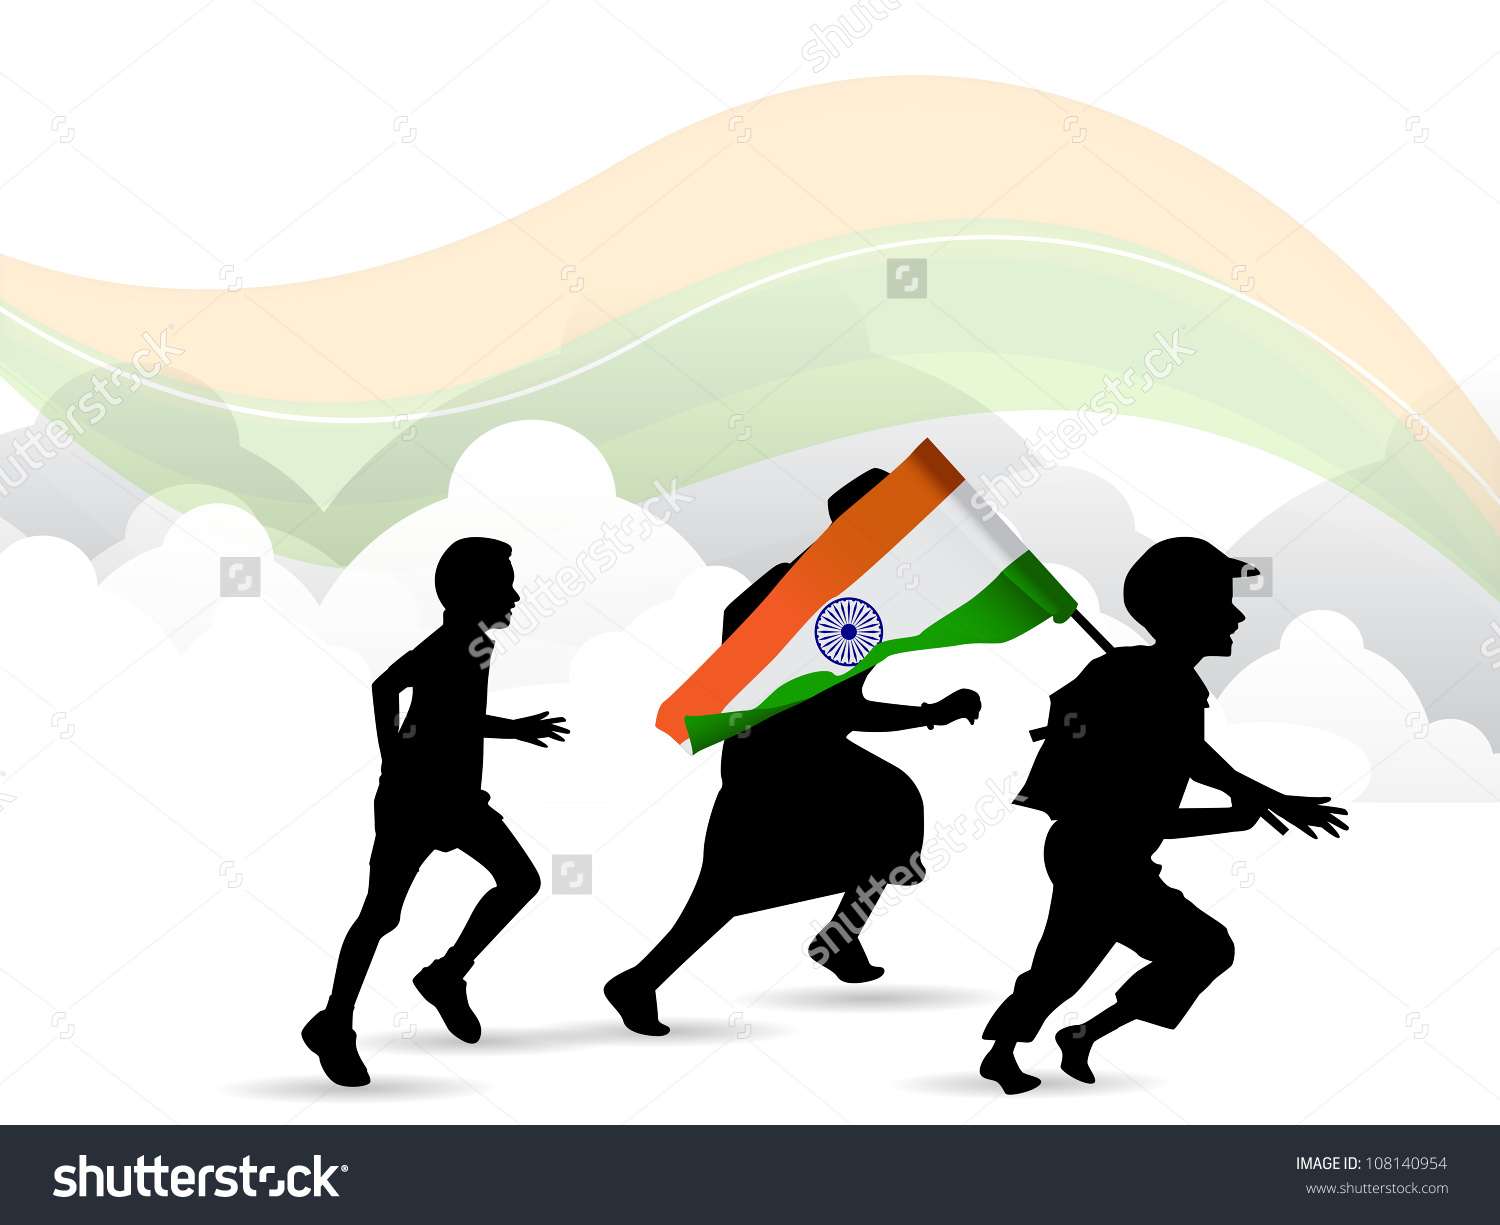 Children Silhouette On Indian Flag Waving Stock Vector 108140954.